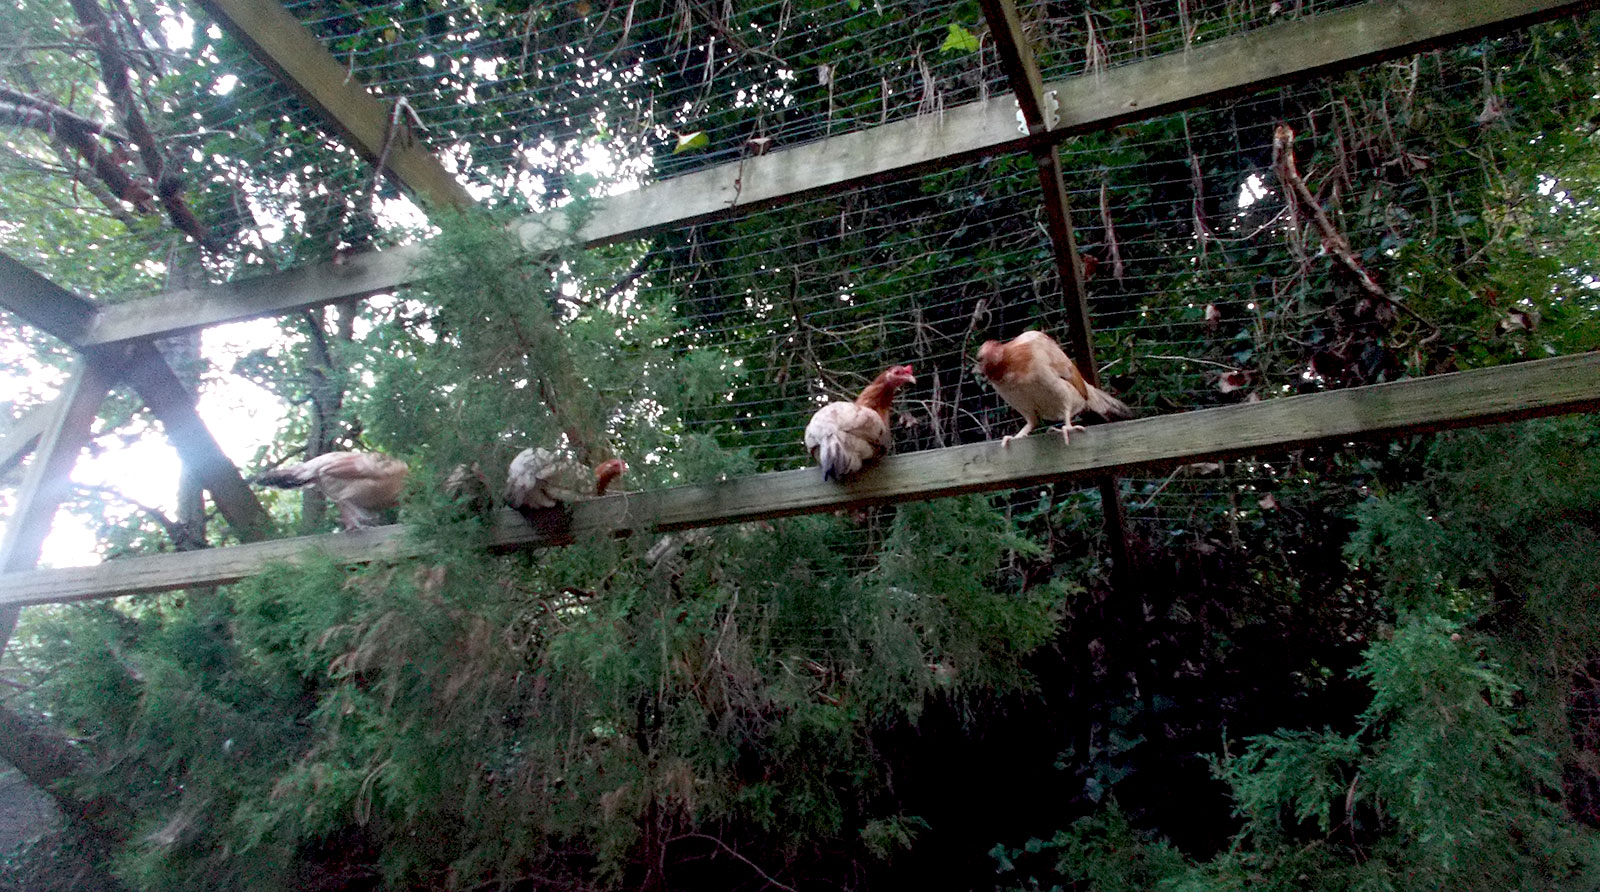 hens perched on a high beam